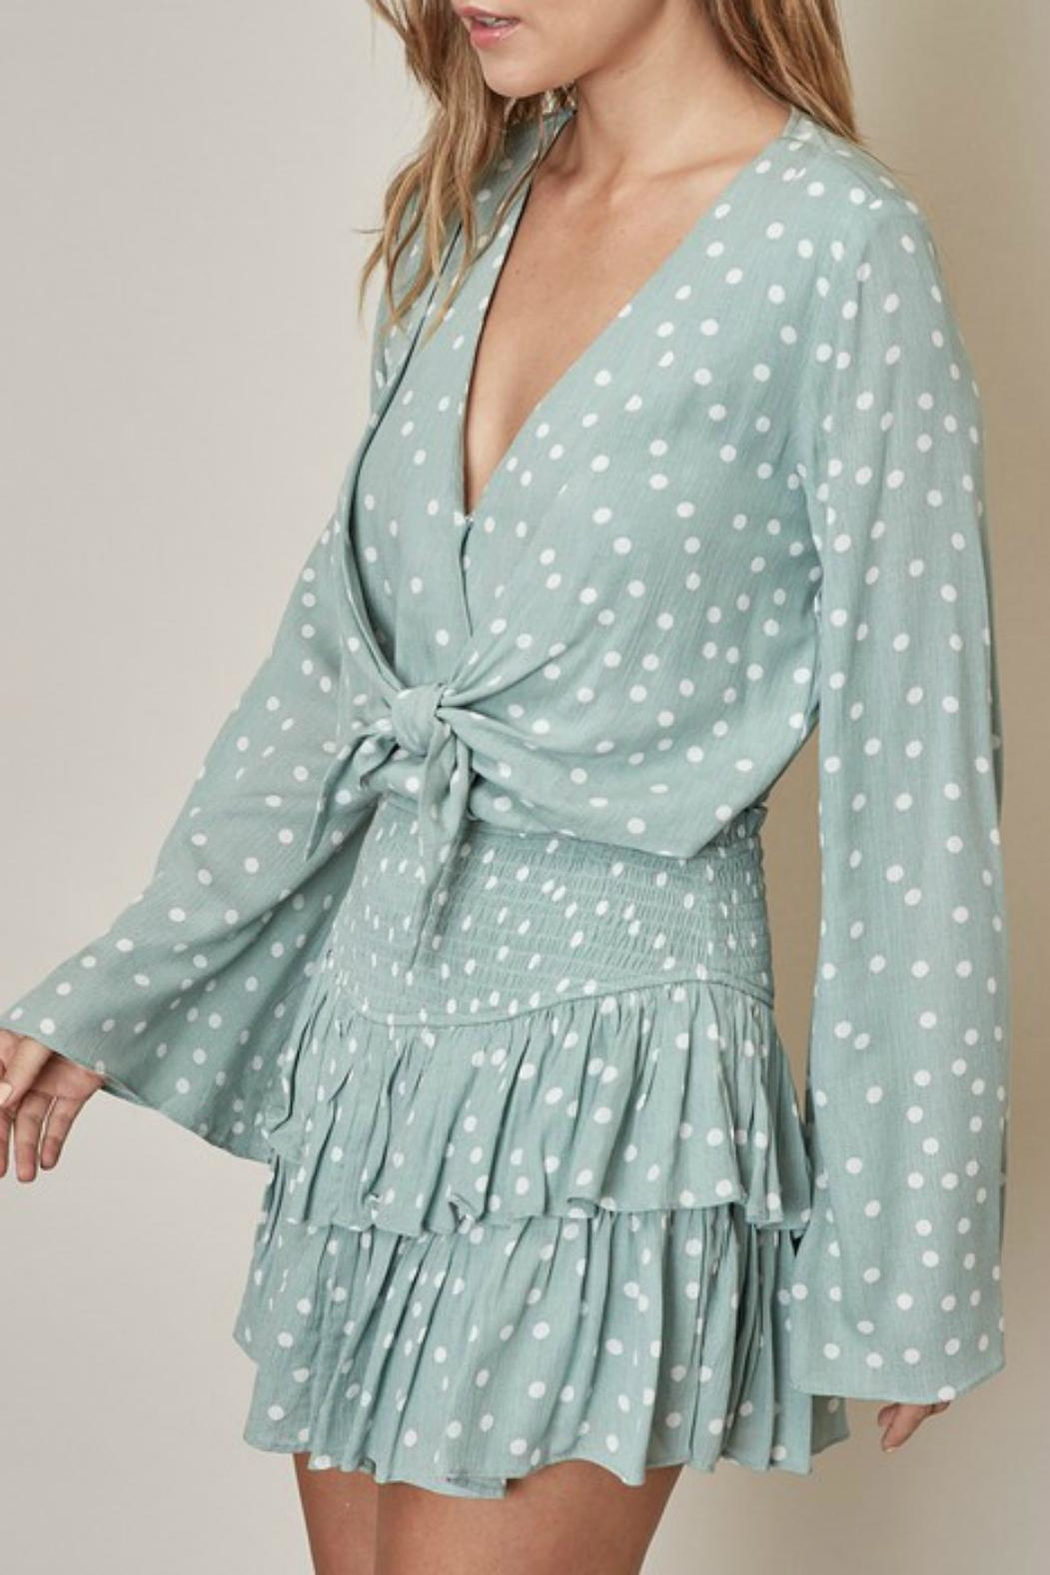 Pretty Little Things Polka Dot Blouse - Front Full Image